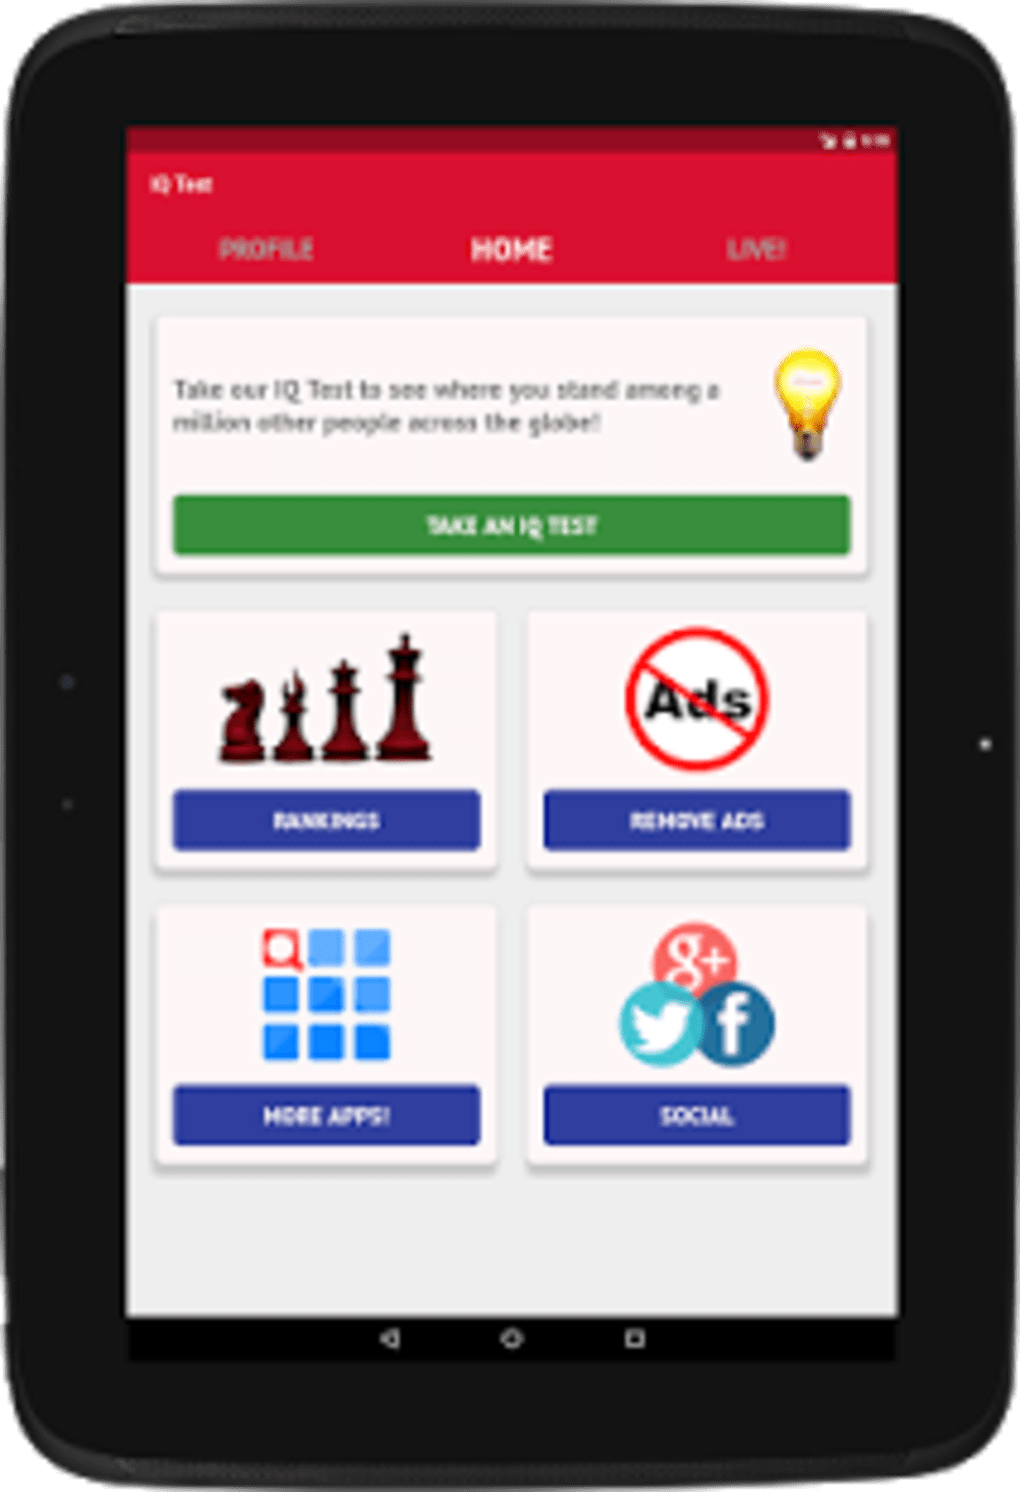 IQ Test - How smart are you? for Android - Download